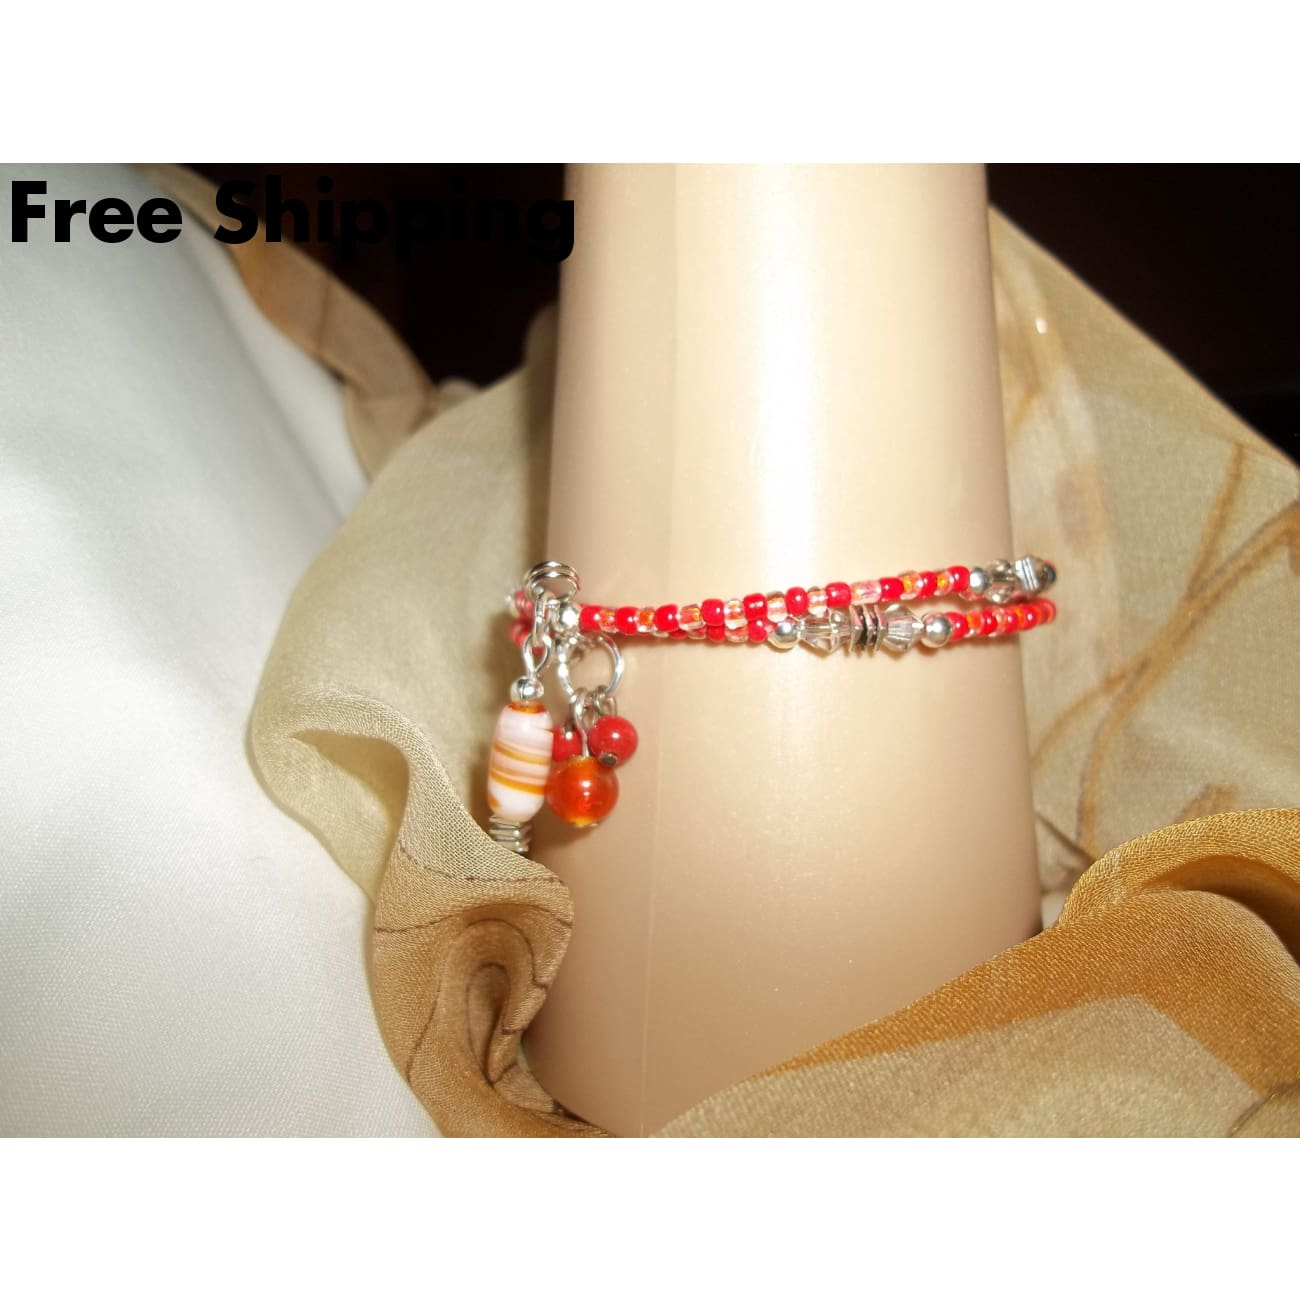 Orange Red Glass Beaded Hand Crafted Wrap Bangle Bracelet W/ Vintage Bead Dangles - Bracelets